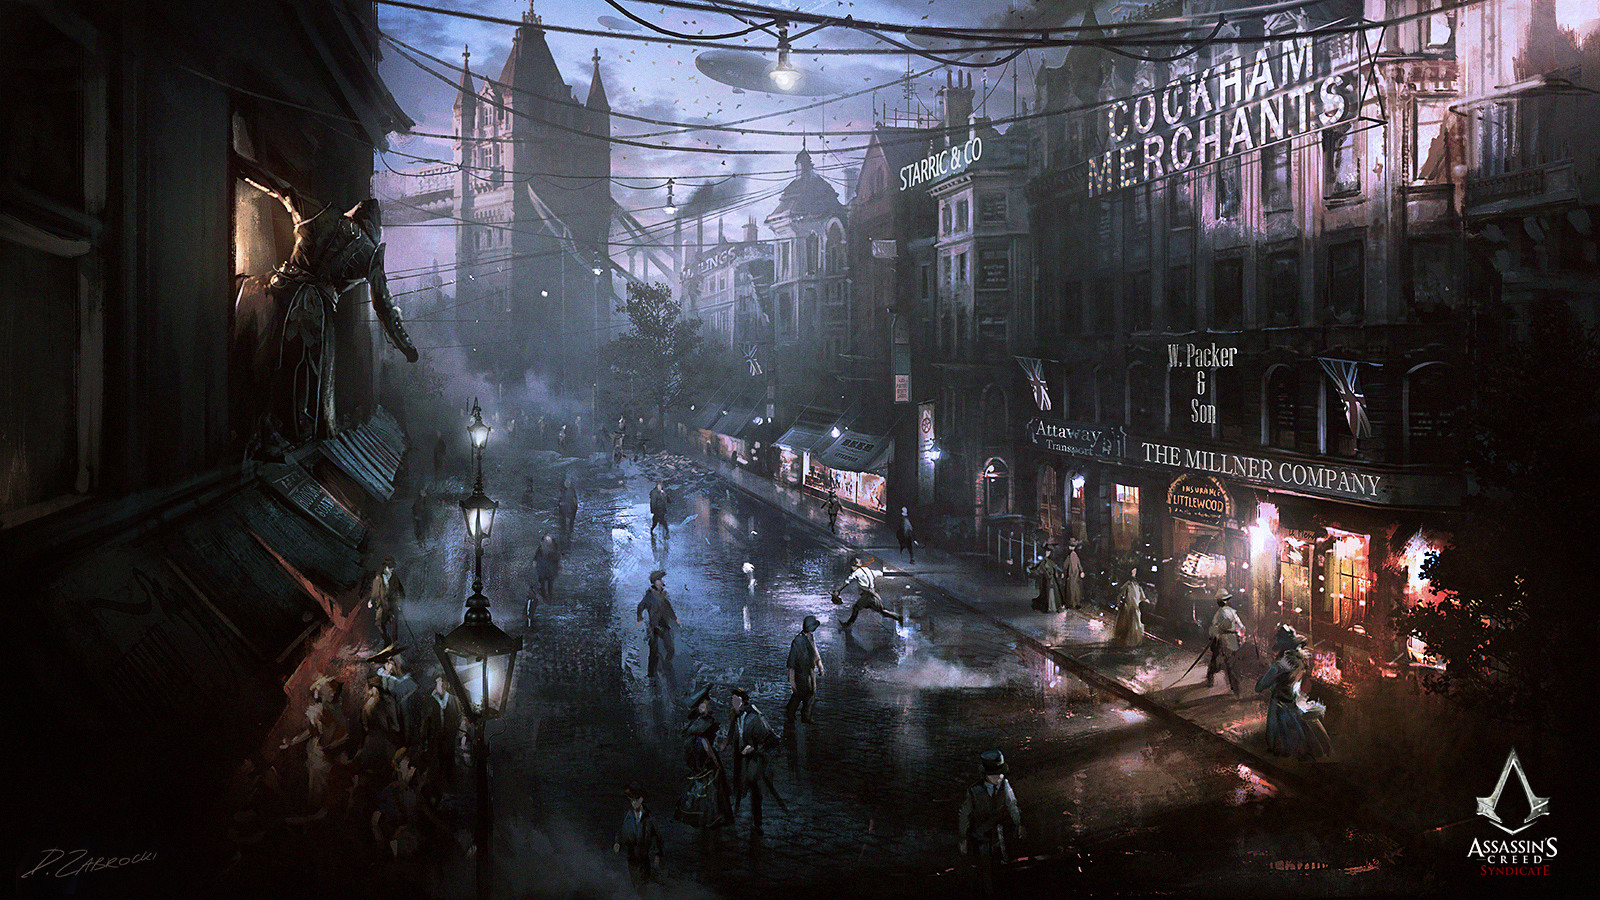 Artstation Assassin S Creed Syndicate Street View Darek Zabrocki